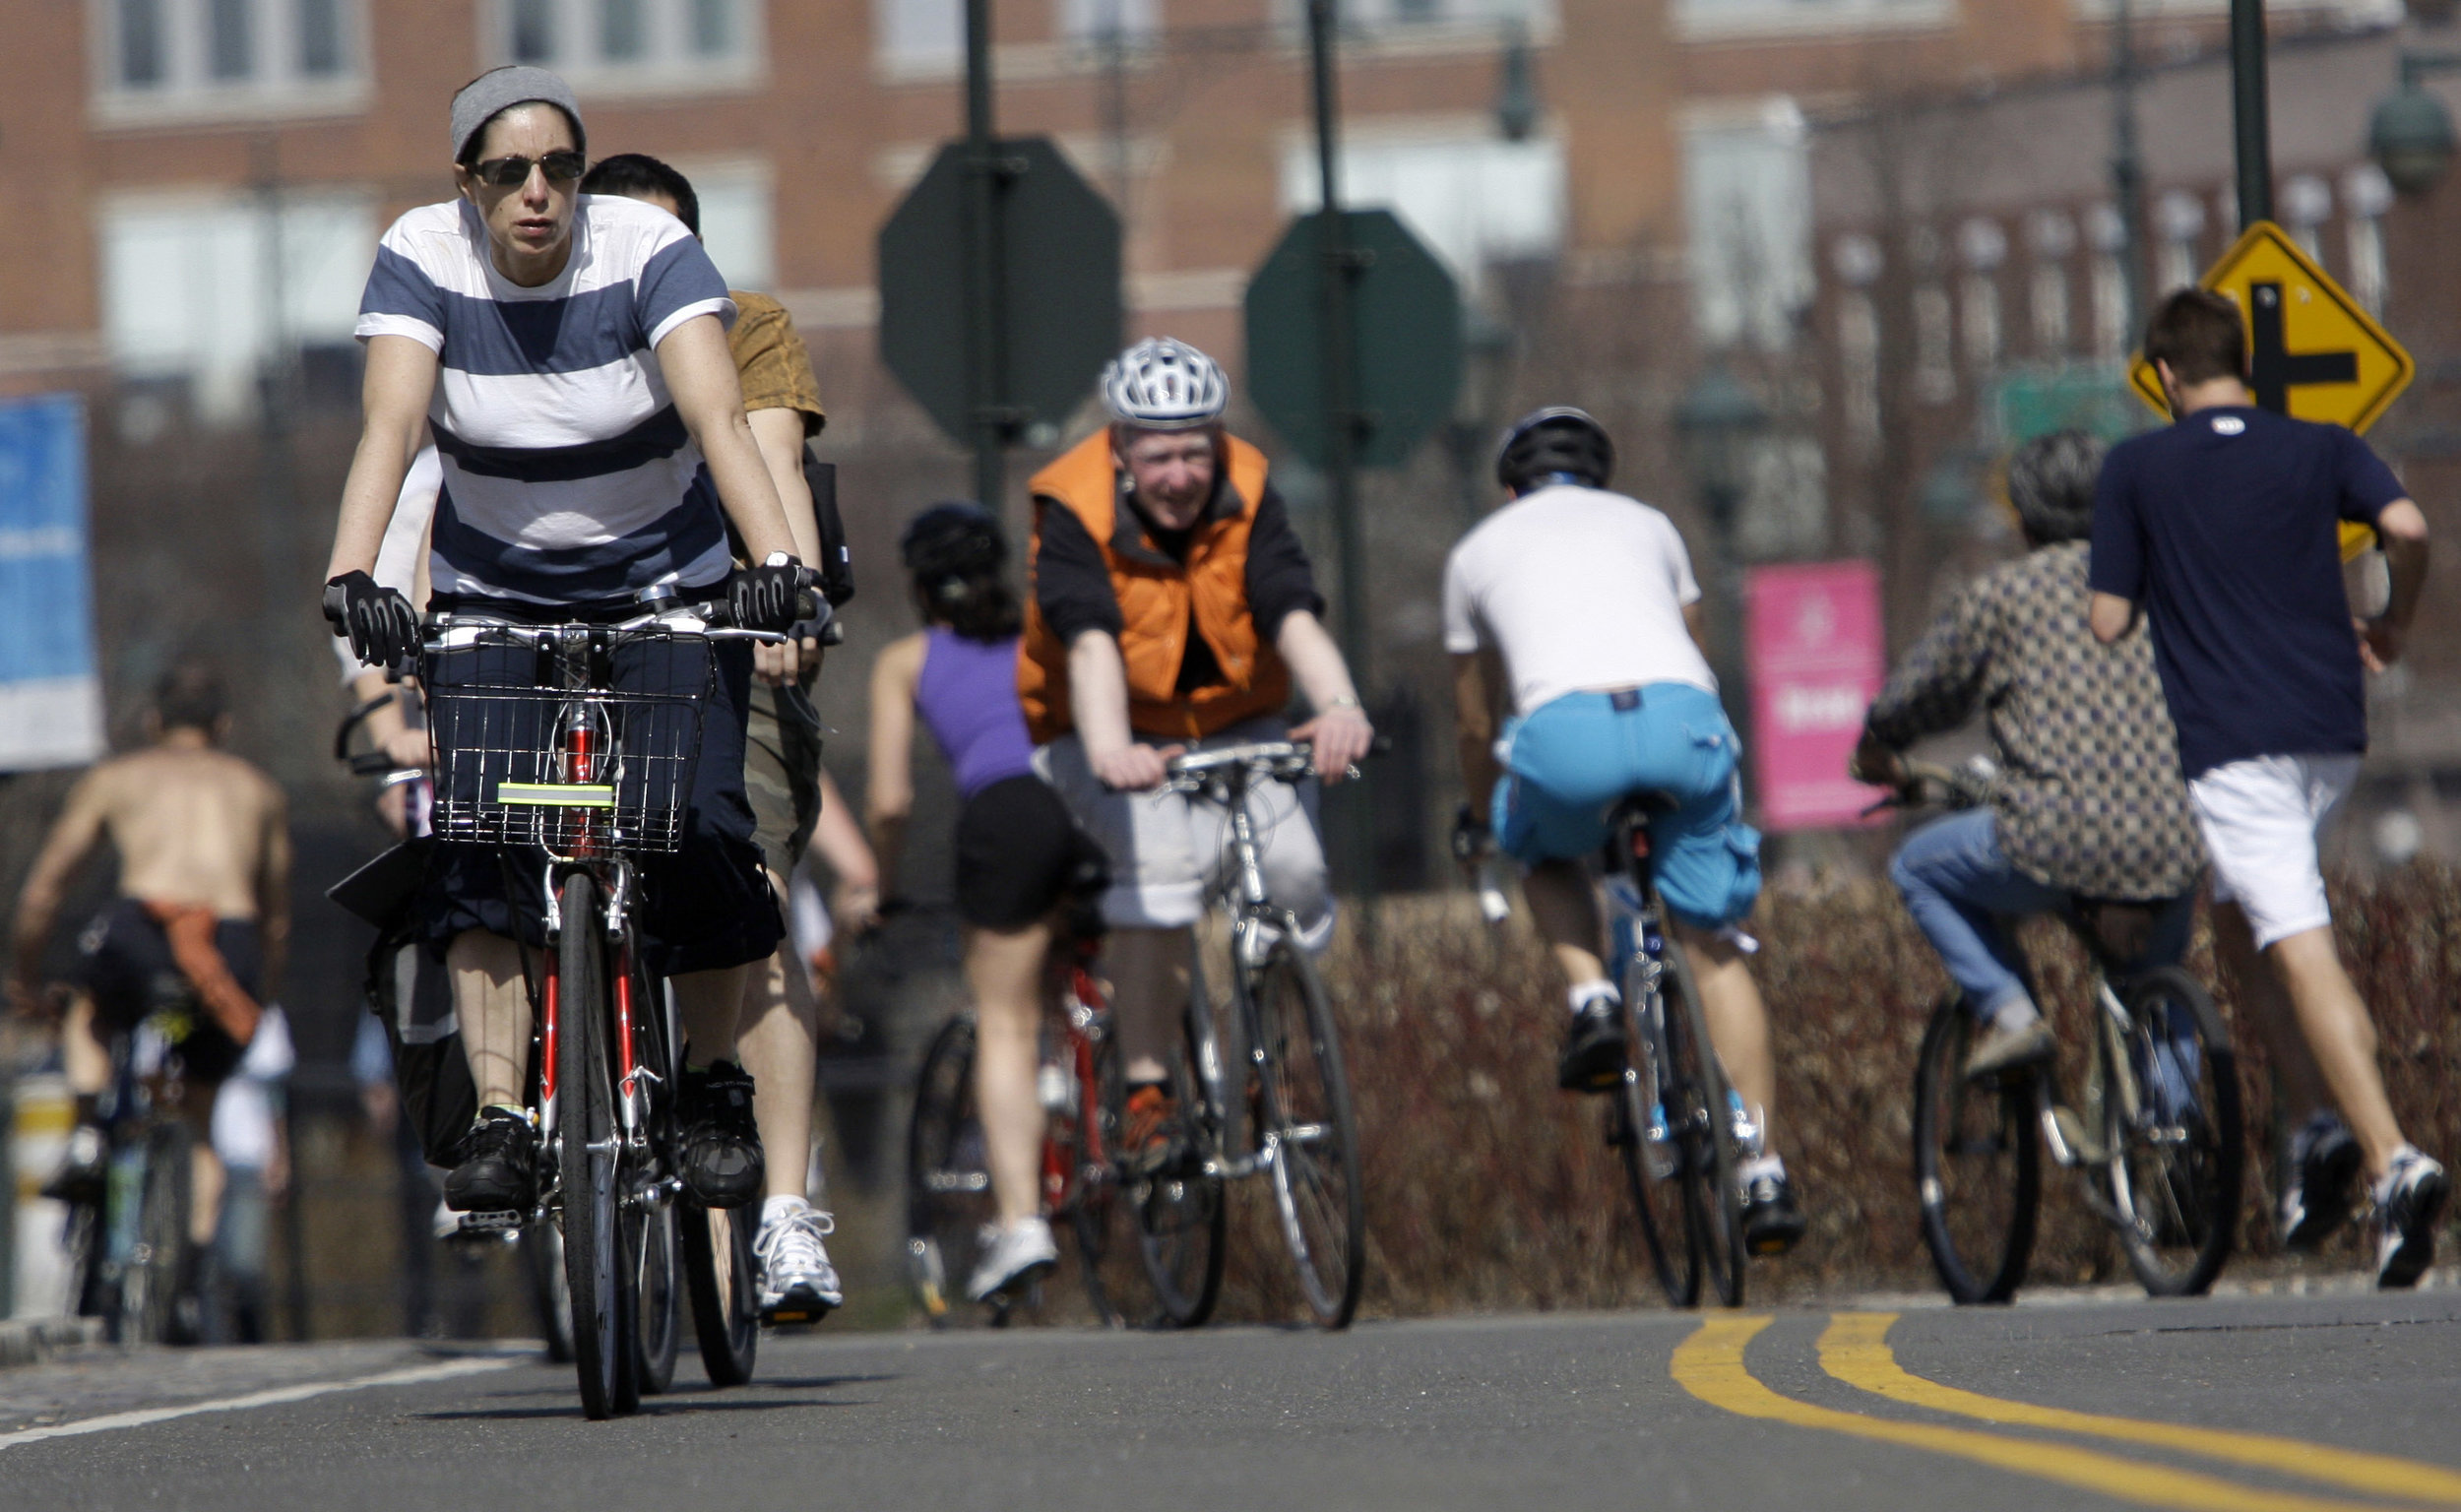 A bill passed by the City Council Tuesday would enables cyclists to follow pedestrian signals at crosswalks, rather than vehicular traffic signals. AP Photo/Frank Franklin II.